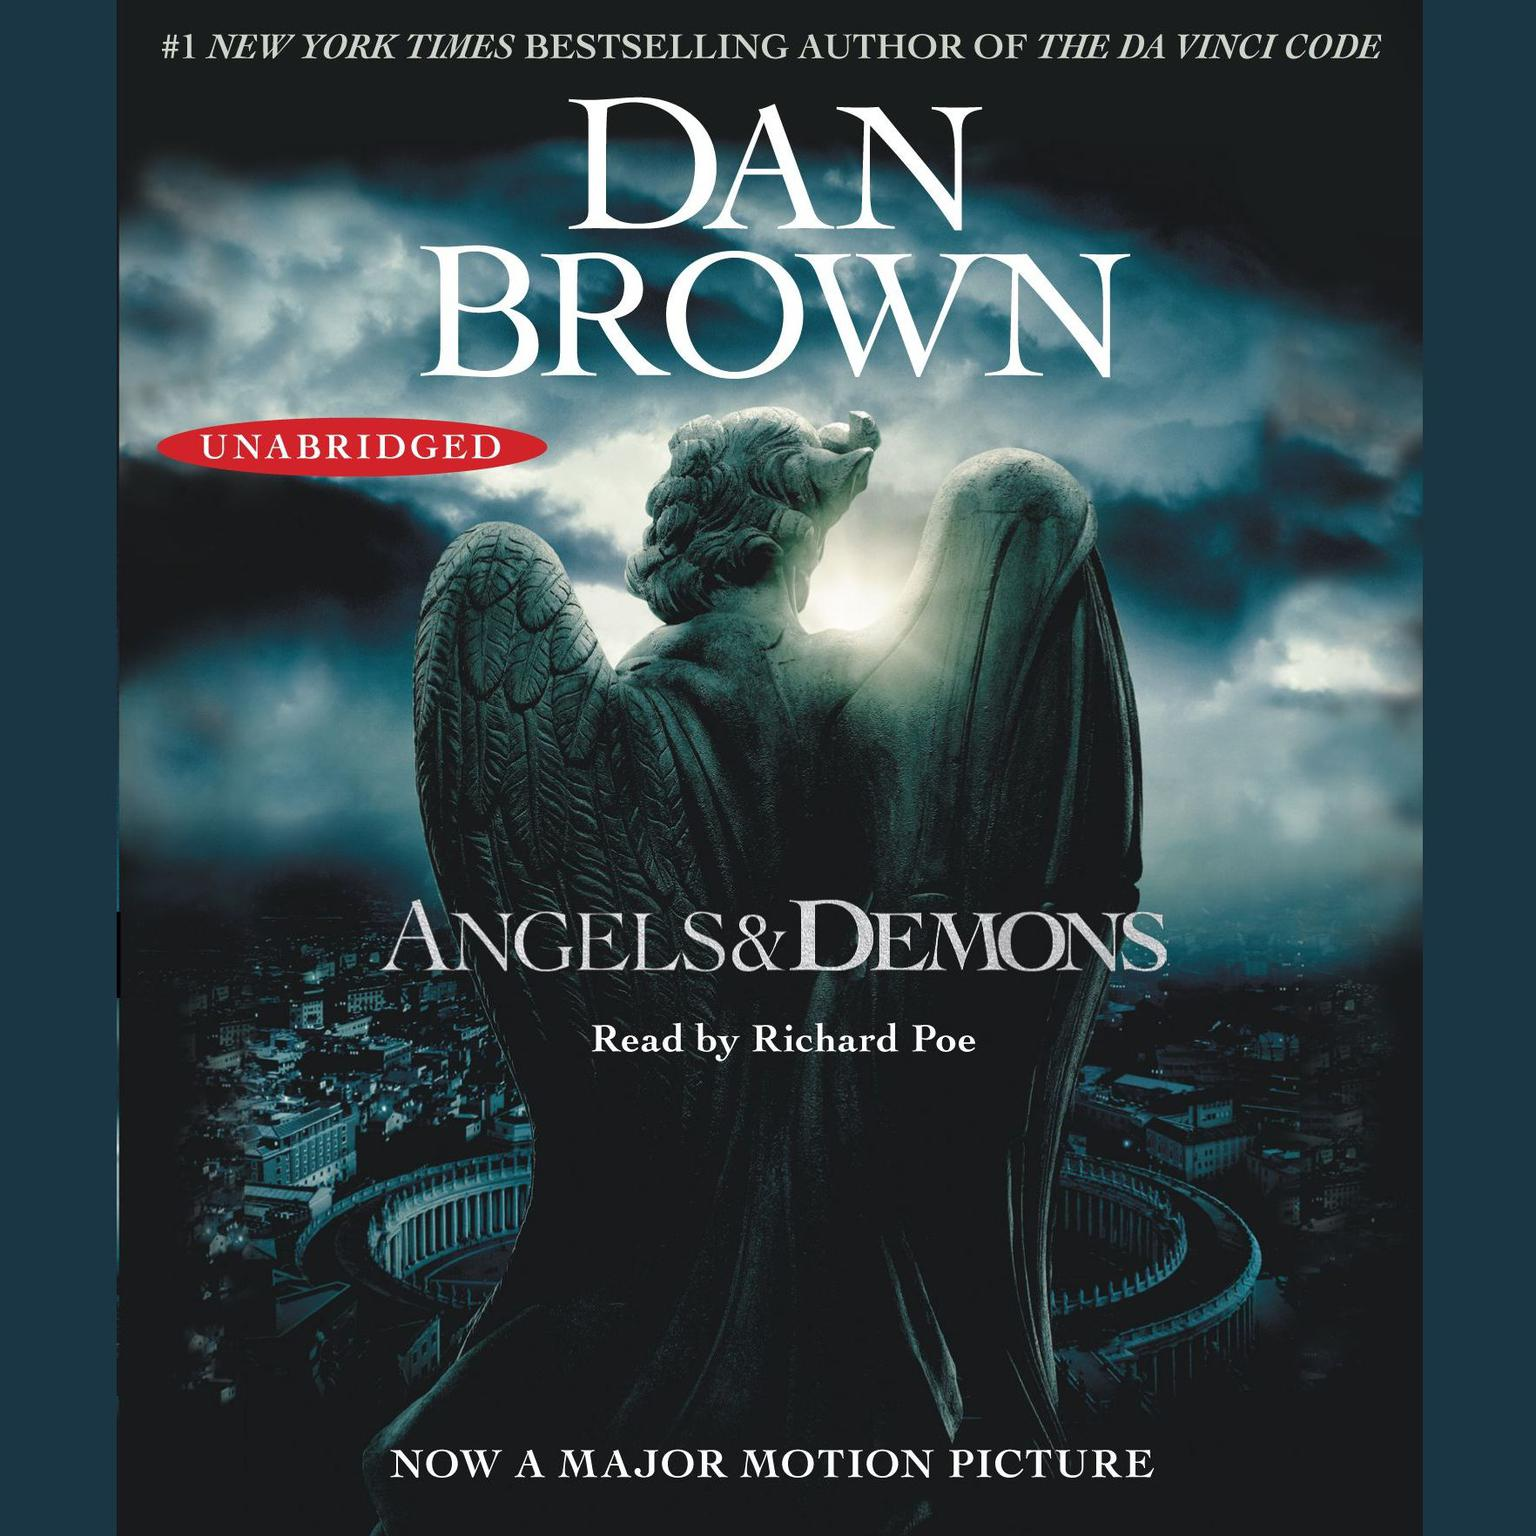 Angels and demons plot summary